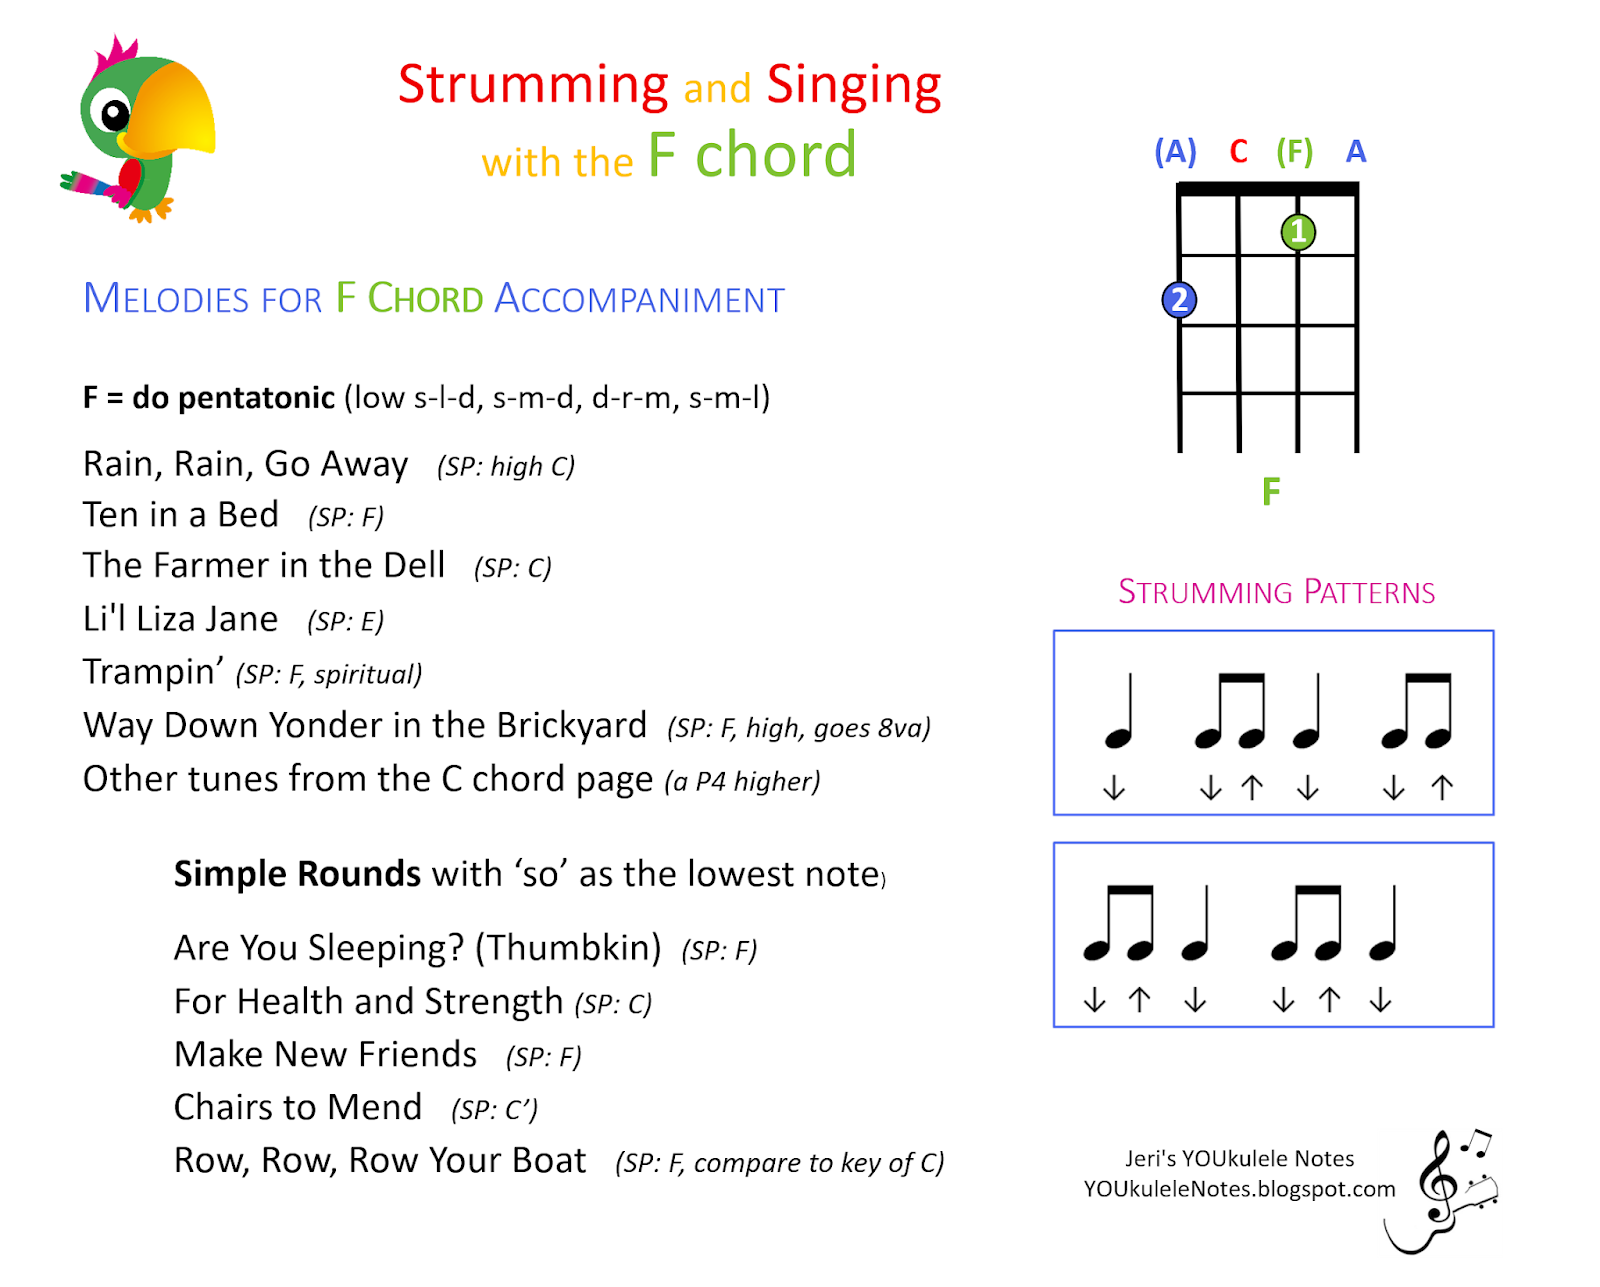 Jeri's YOUkulele Notes: Strumming & Singing with the F Chord